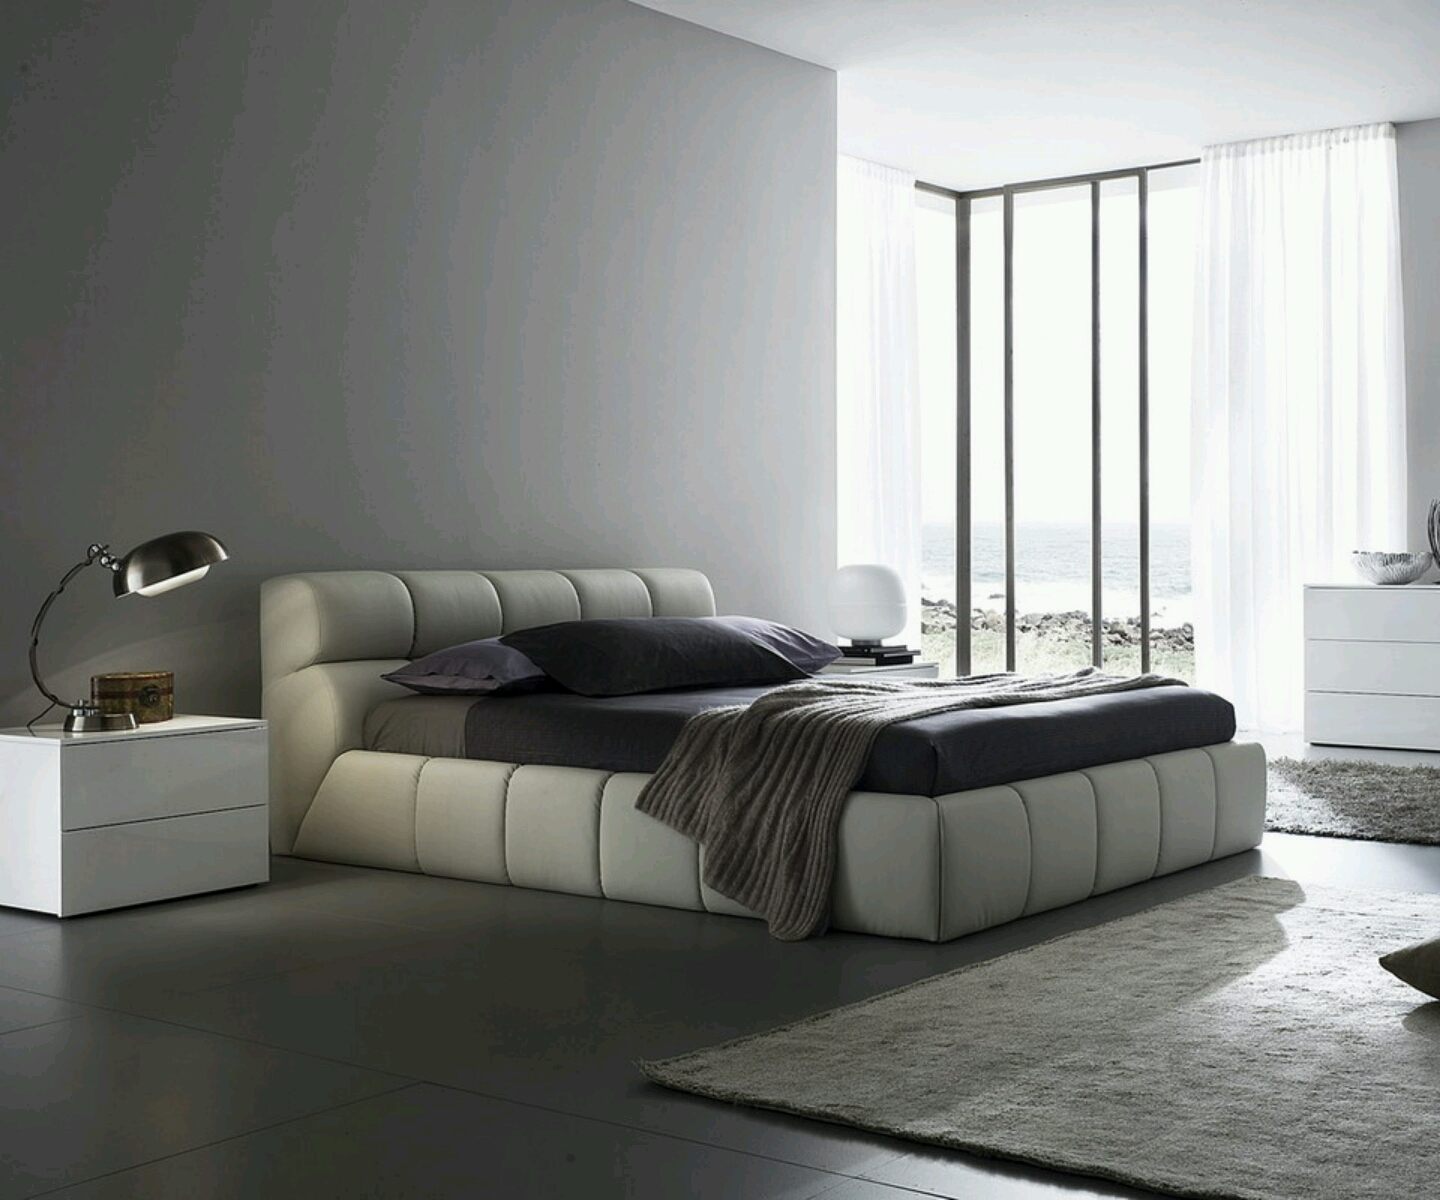 bedroom chair design ideas covers rental rochester ny modern furniture bed designs beautiful bedrooms